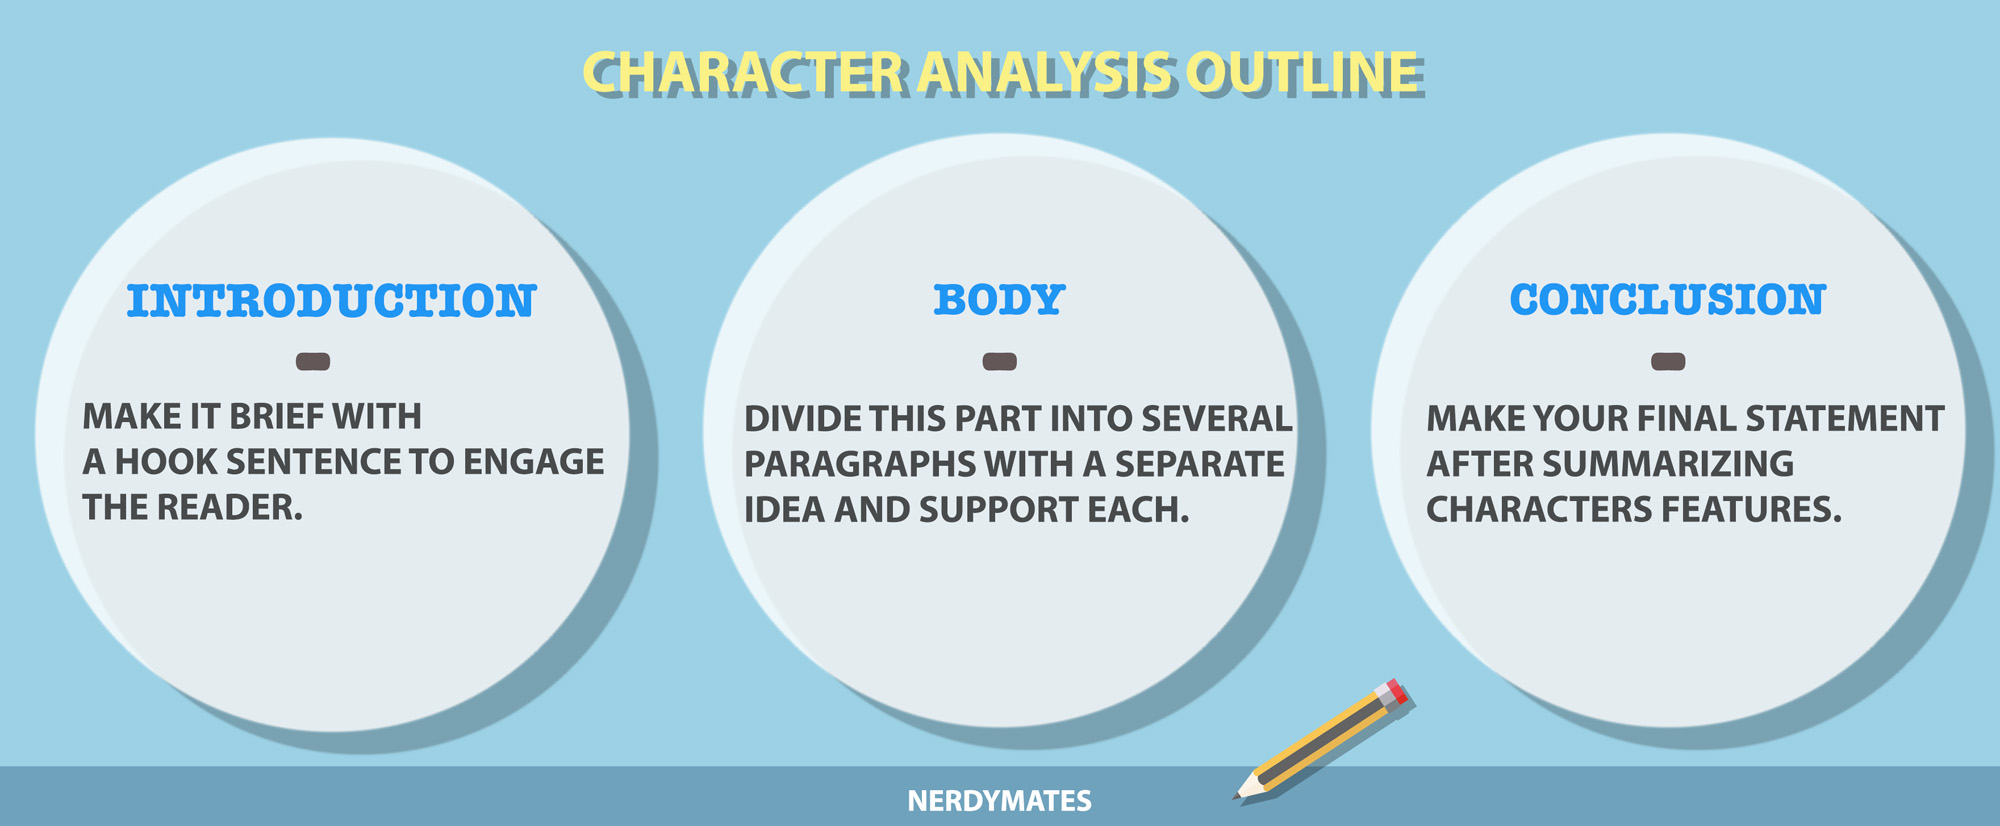 character analysis. | Custom PHD Thesis